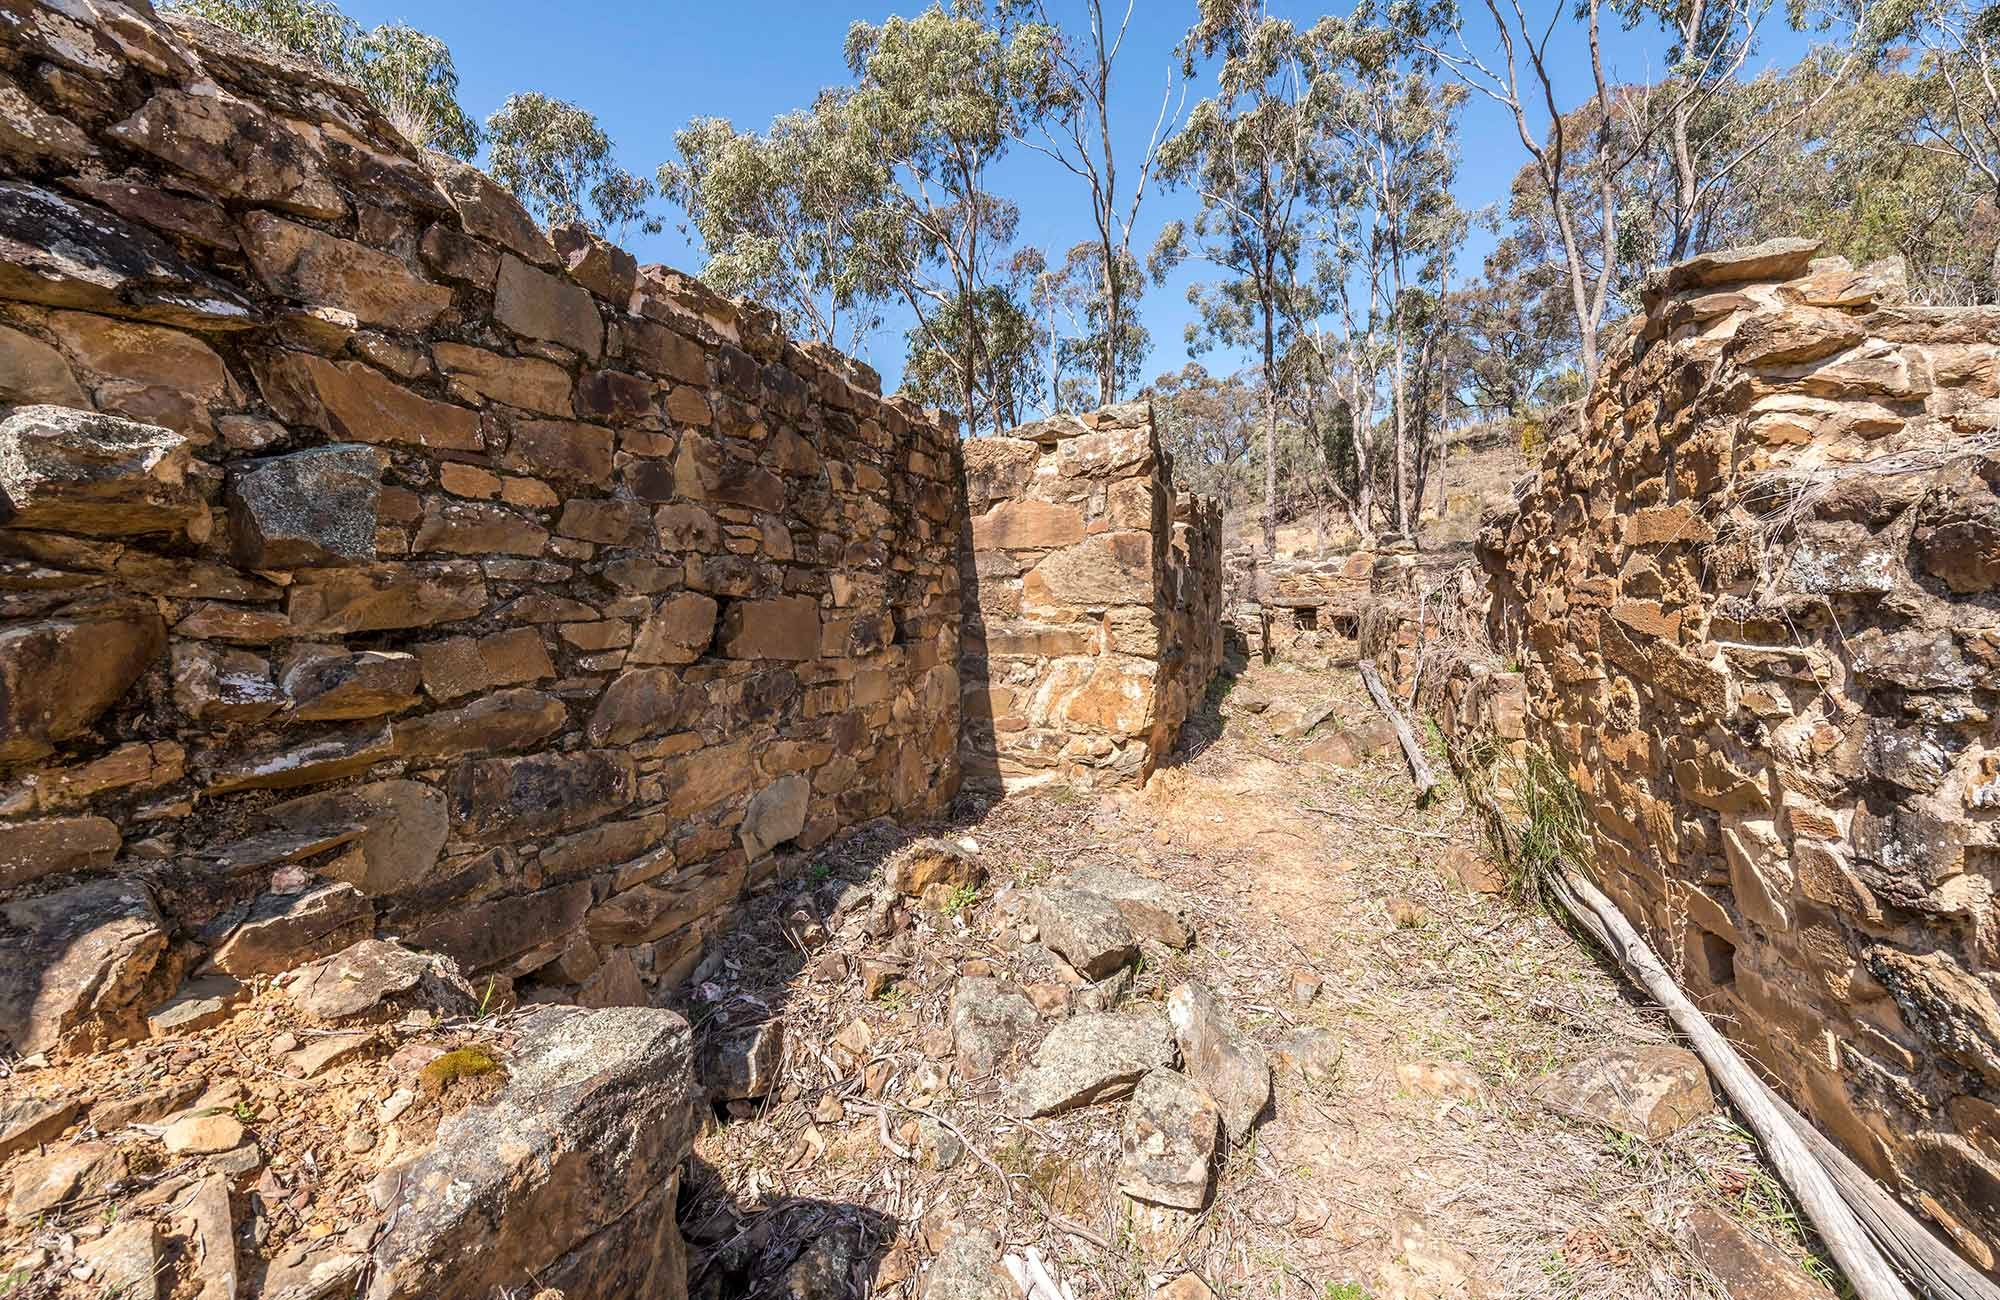 Cornish quartz roasting pits, Hill End Historic Site. Photo: John Spencer